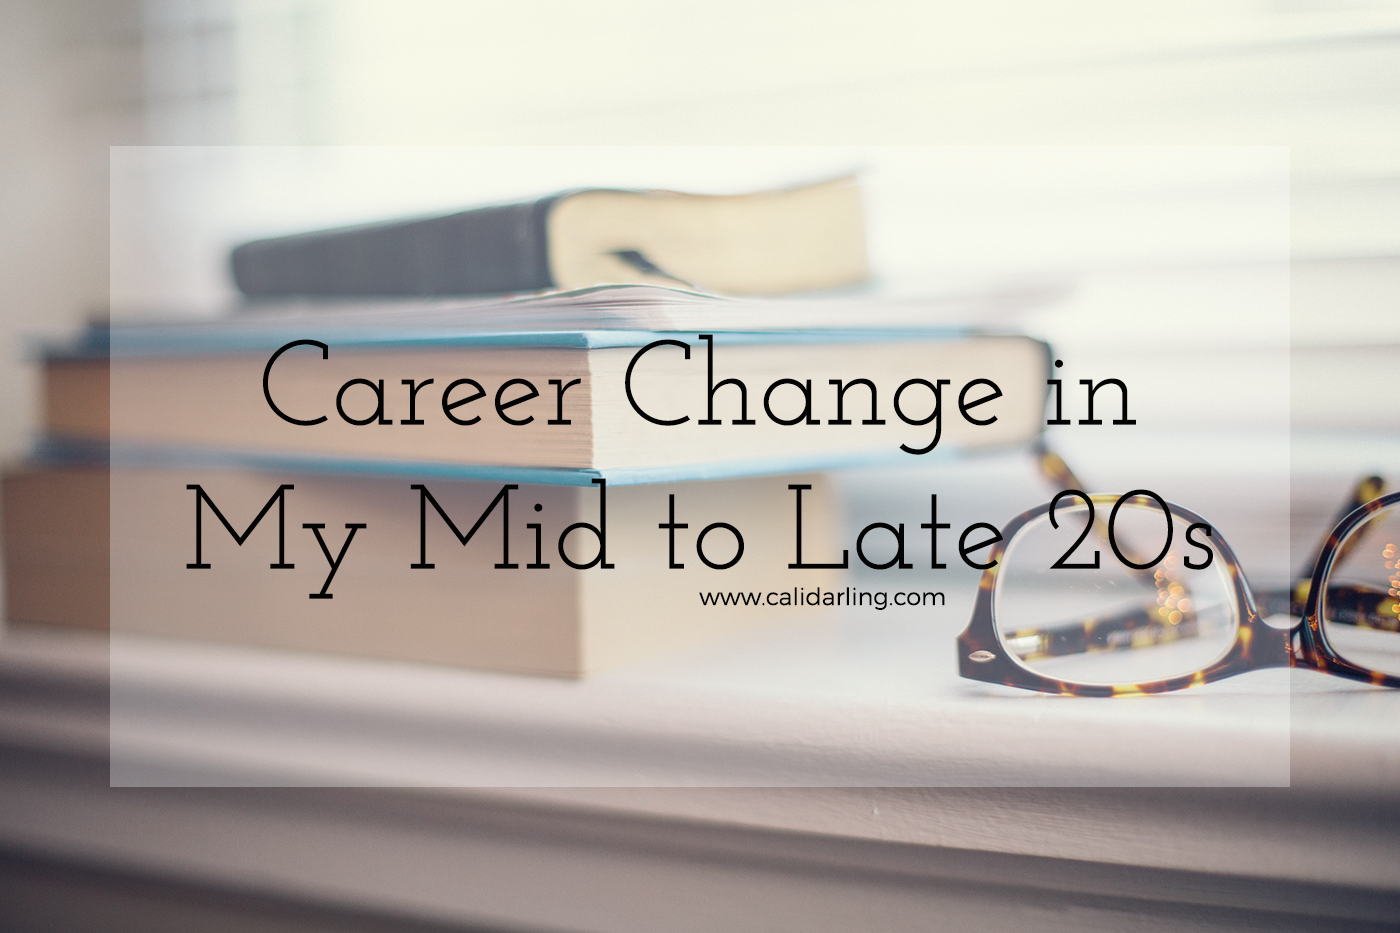 career-change-in-my-mid-to-late-20s